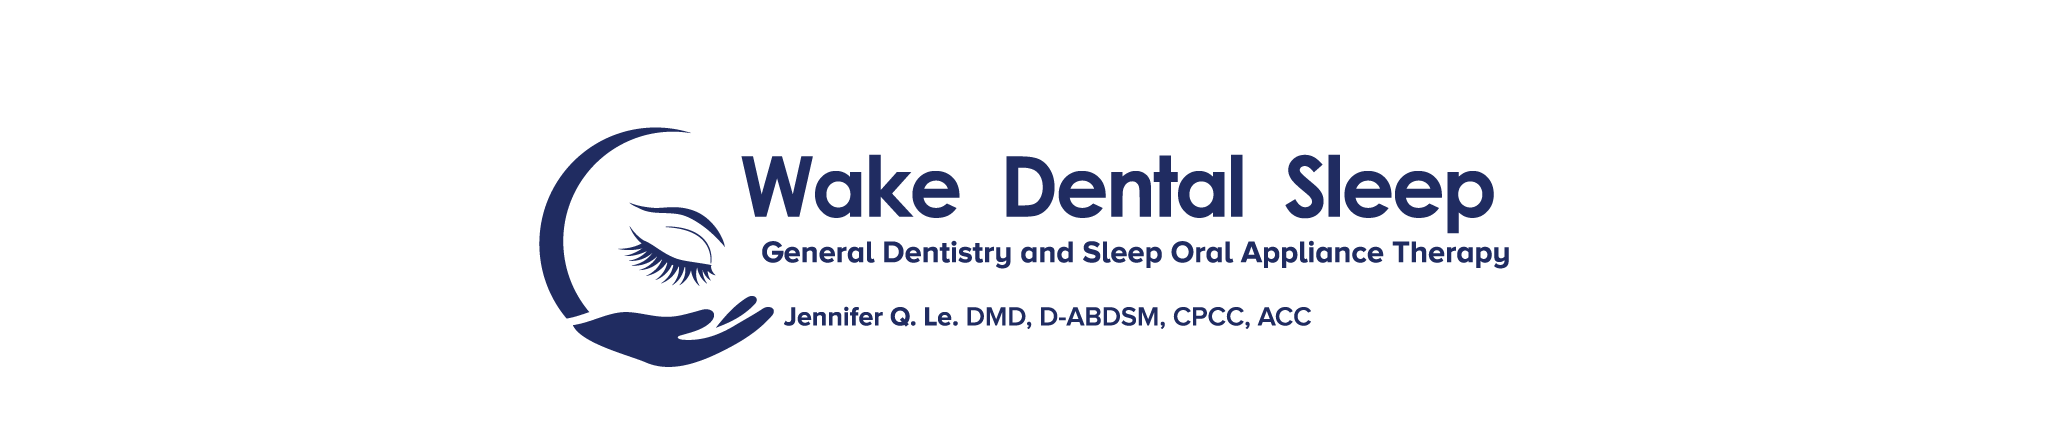 Wake Dental Sleep Dental Logo